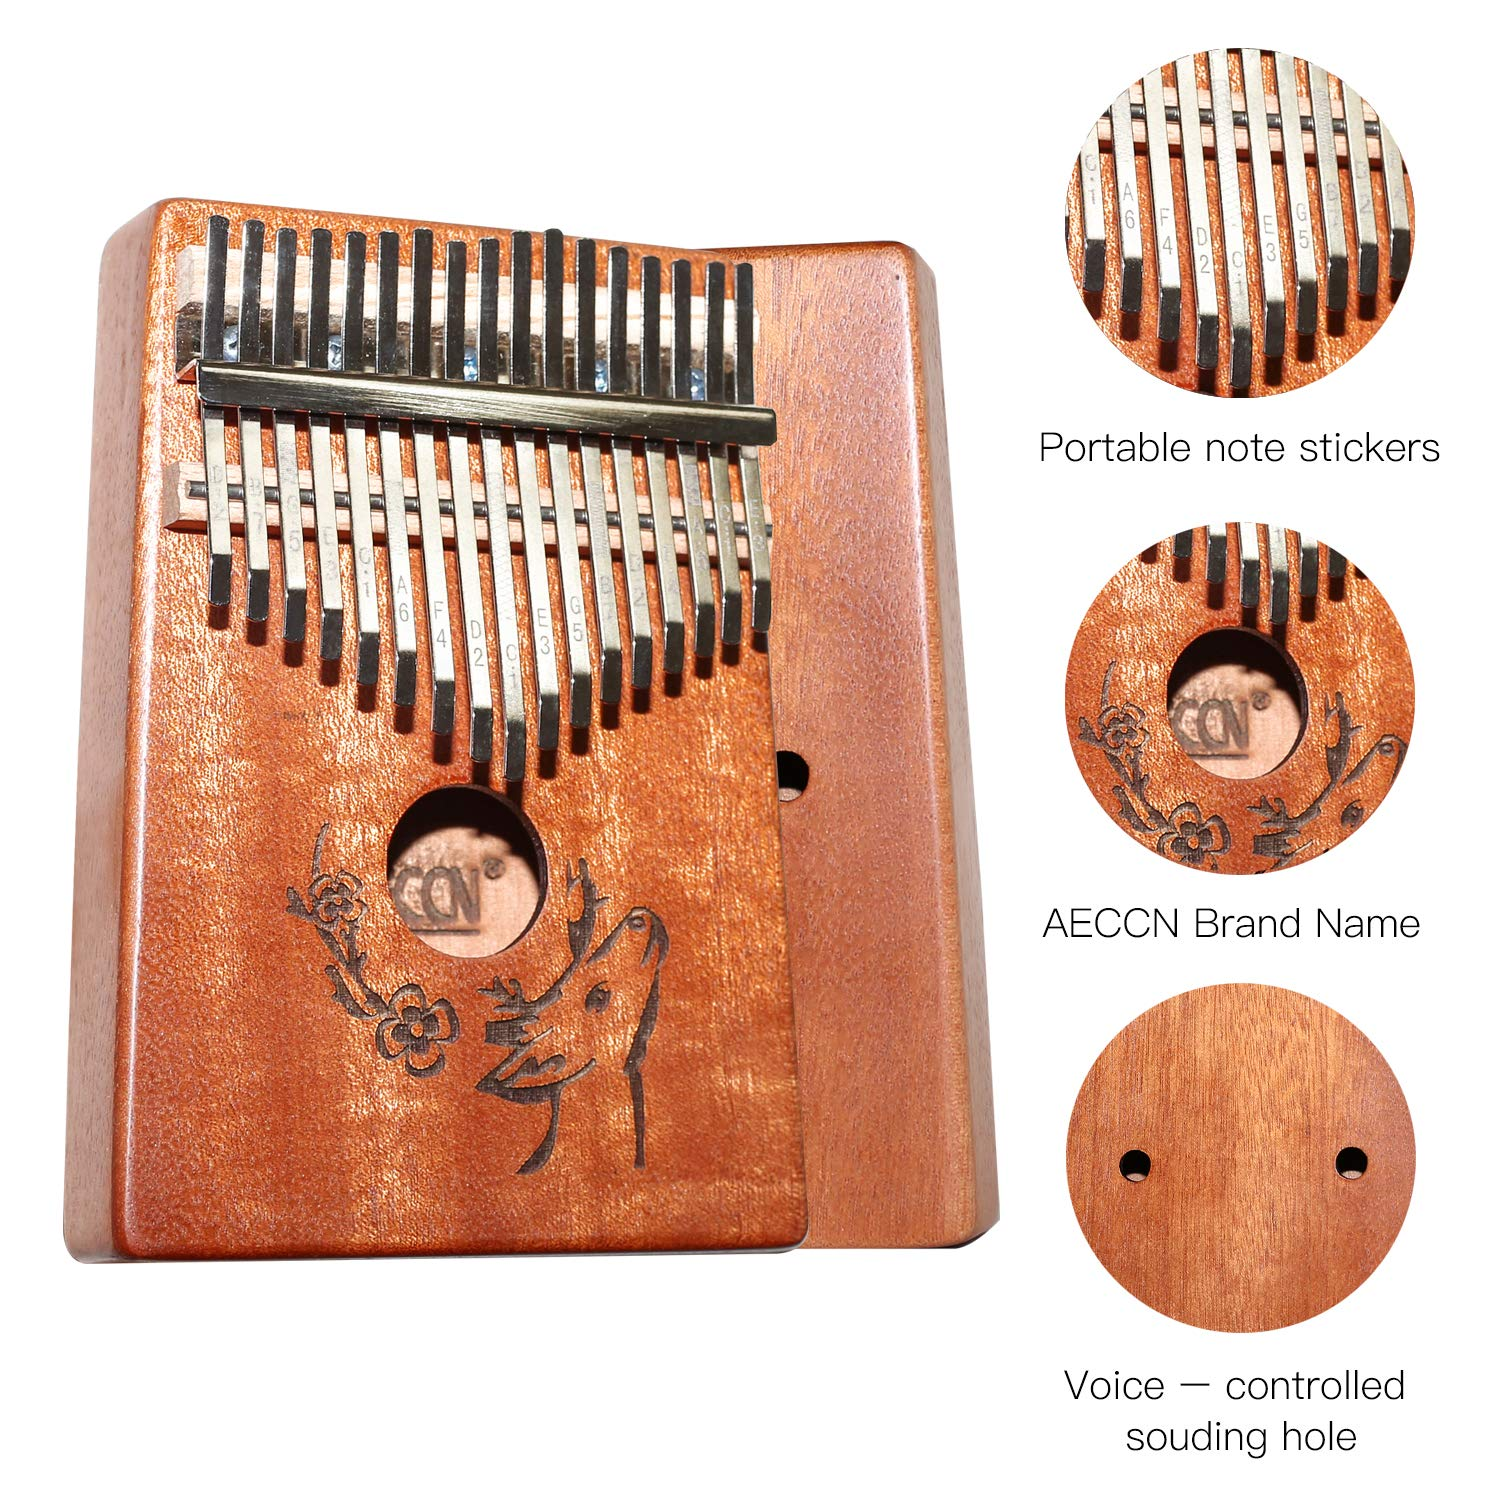 AECCN Kalimba 17 Keys Thumb Piano - Pocket Size With Study Instruction and Tune-Hammer & Simple Sheet Music, Christmas Day Birthday Gifts Idea for Kids Adults Beginners, Professionals (Deer) by AECCN (Image #3)